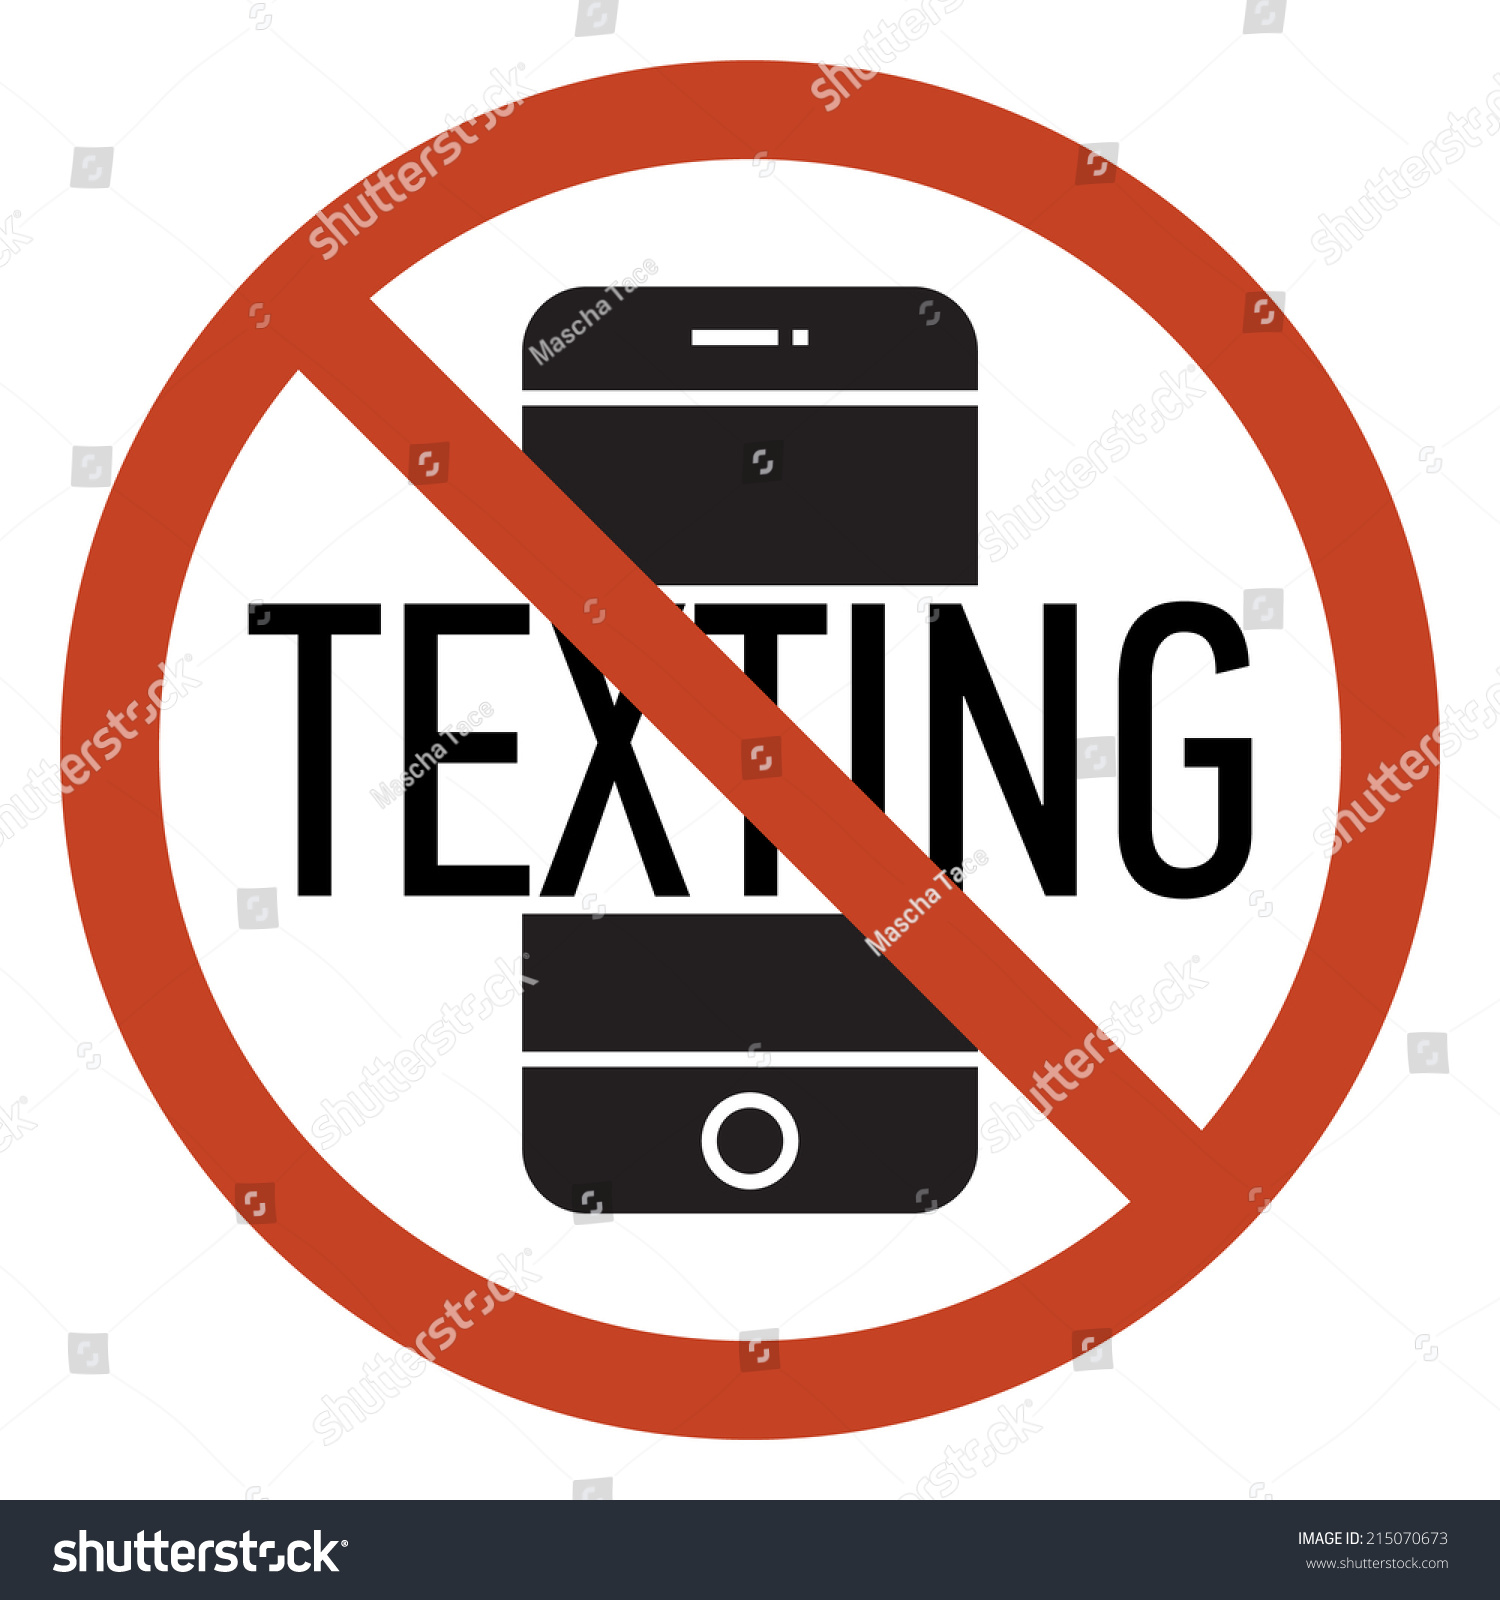 Vector mobile phone using texting restriction stock vector vector mobile phone using and texting restriction round sign with white background texting is not platinumwayz